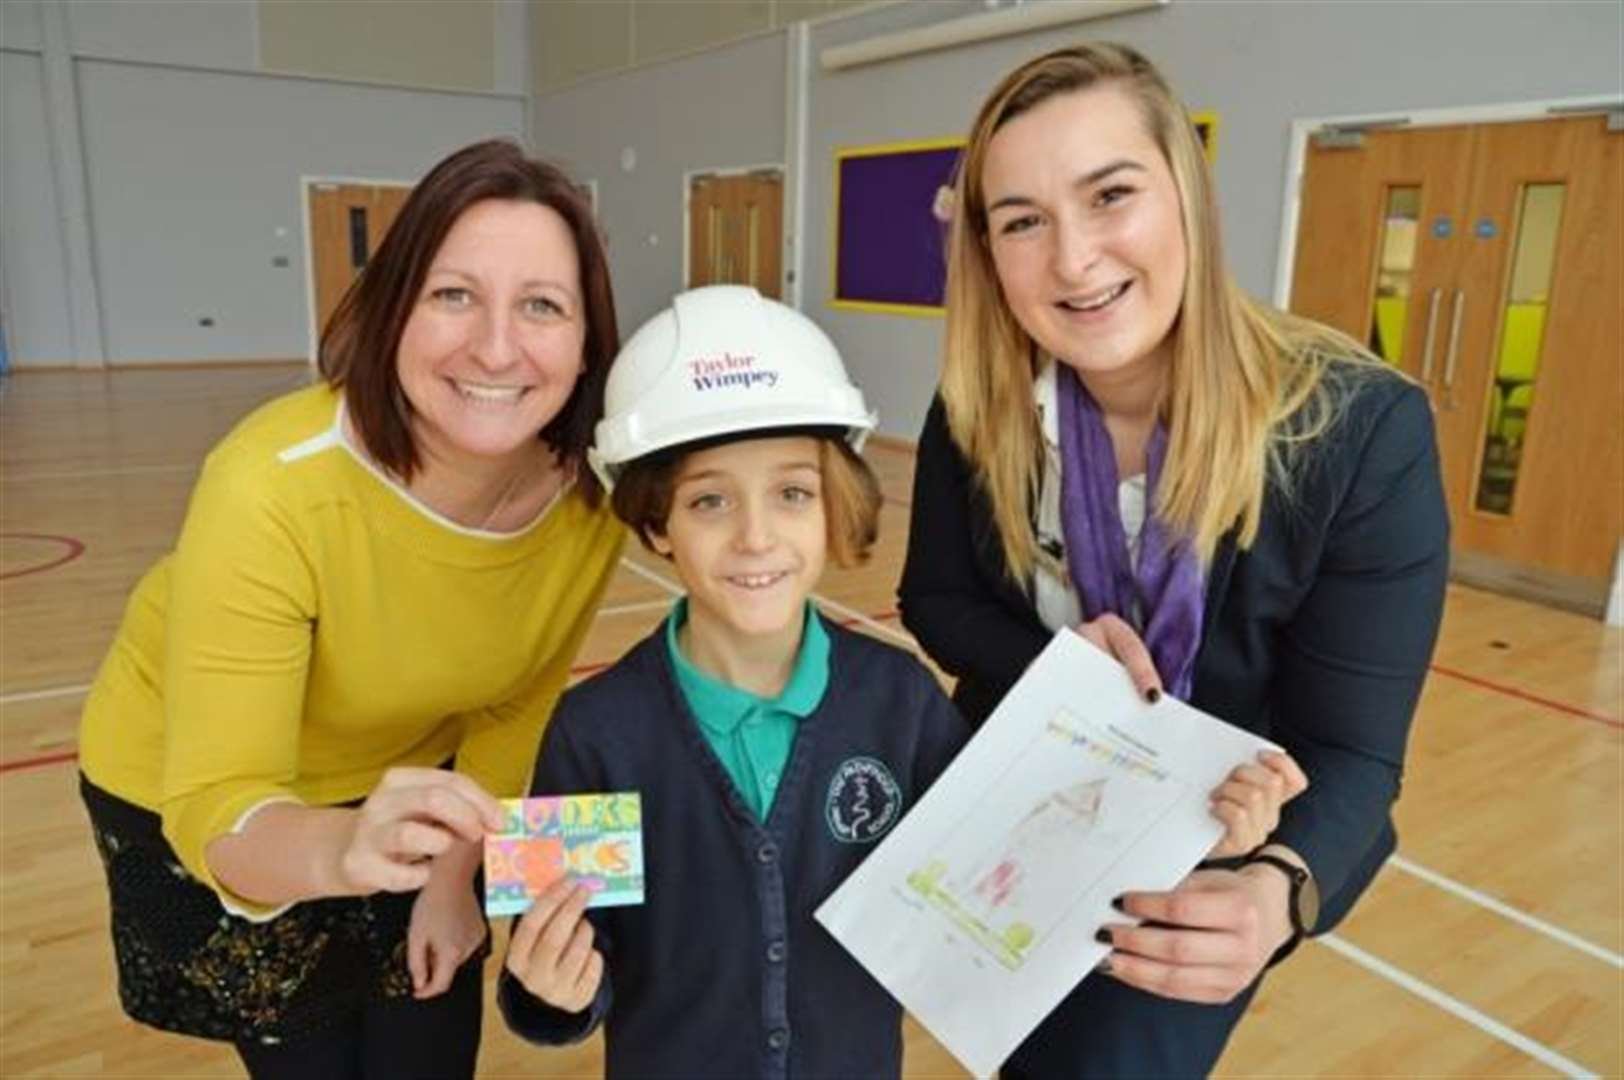 Cambridgeshire school girl wins design competition